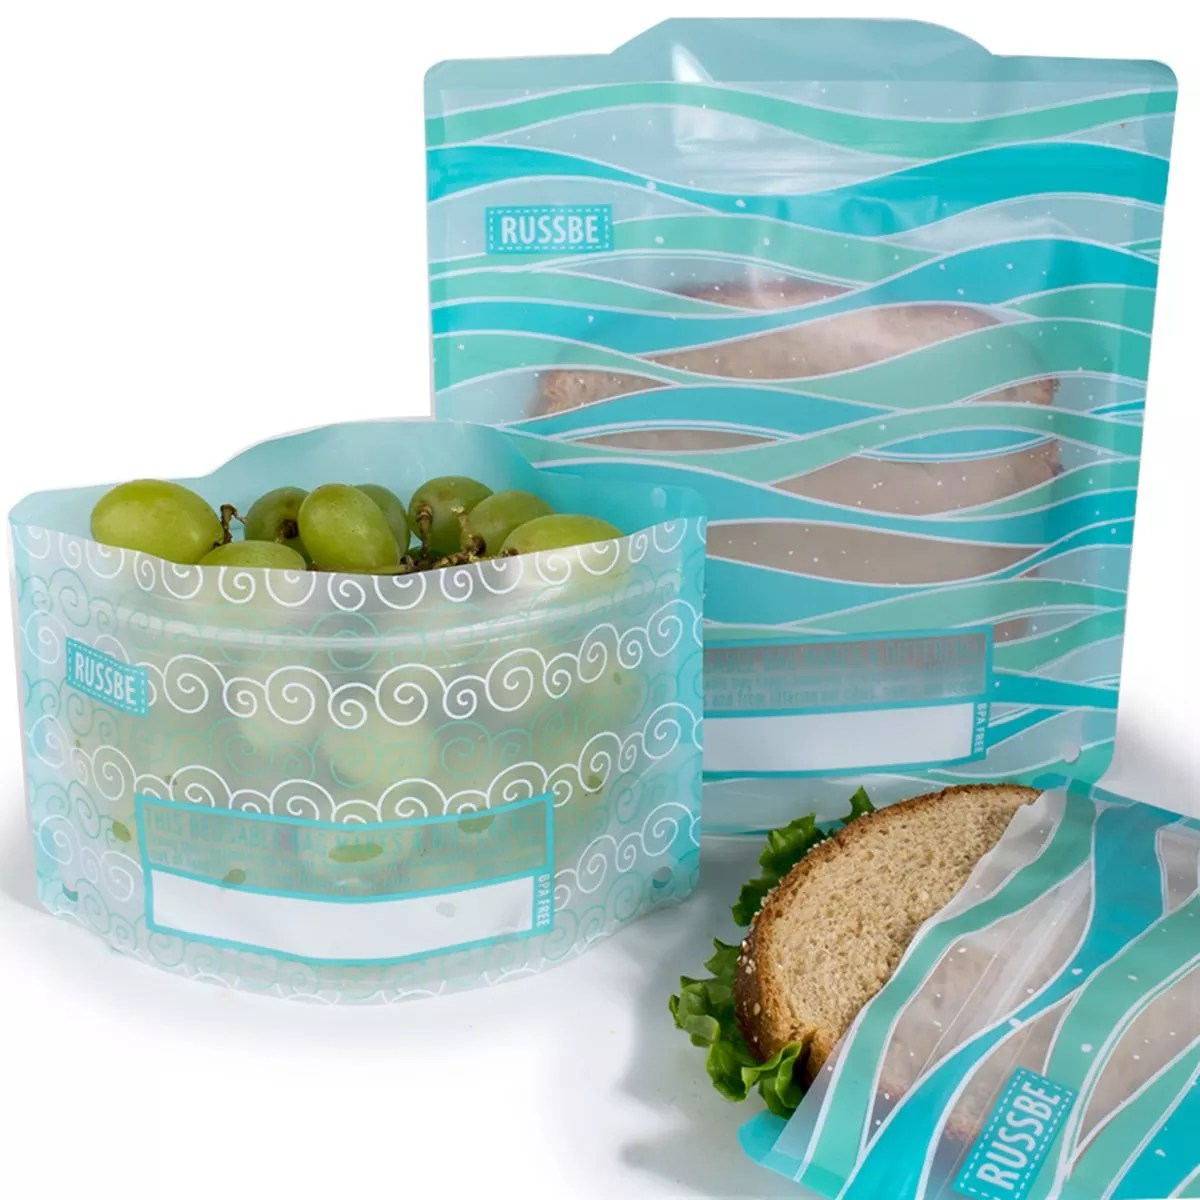 Peaceably Reusable Snack Sandwich Bags Reusable Snack Sandwich Bags Jane Reusable Snack Bags Tutorial Reusable Snack Bags Silicone baby Reusable Snack Bags